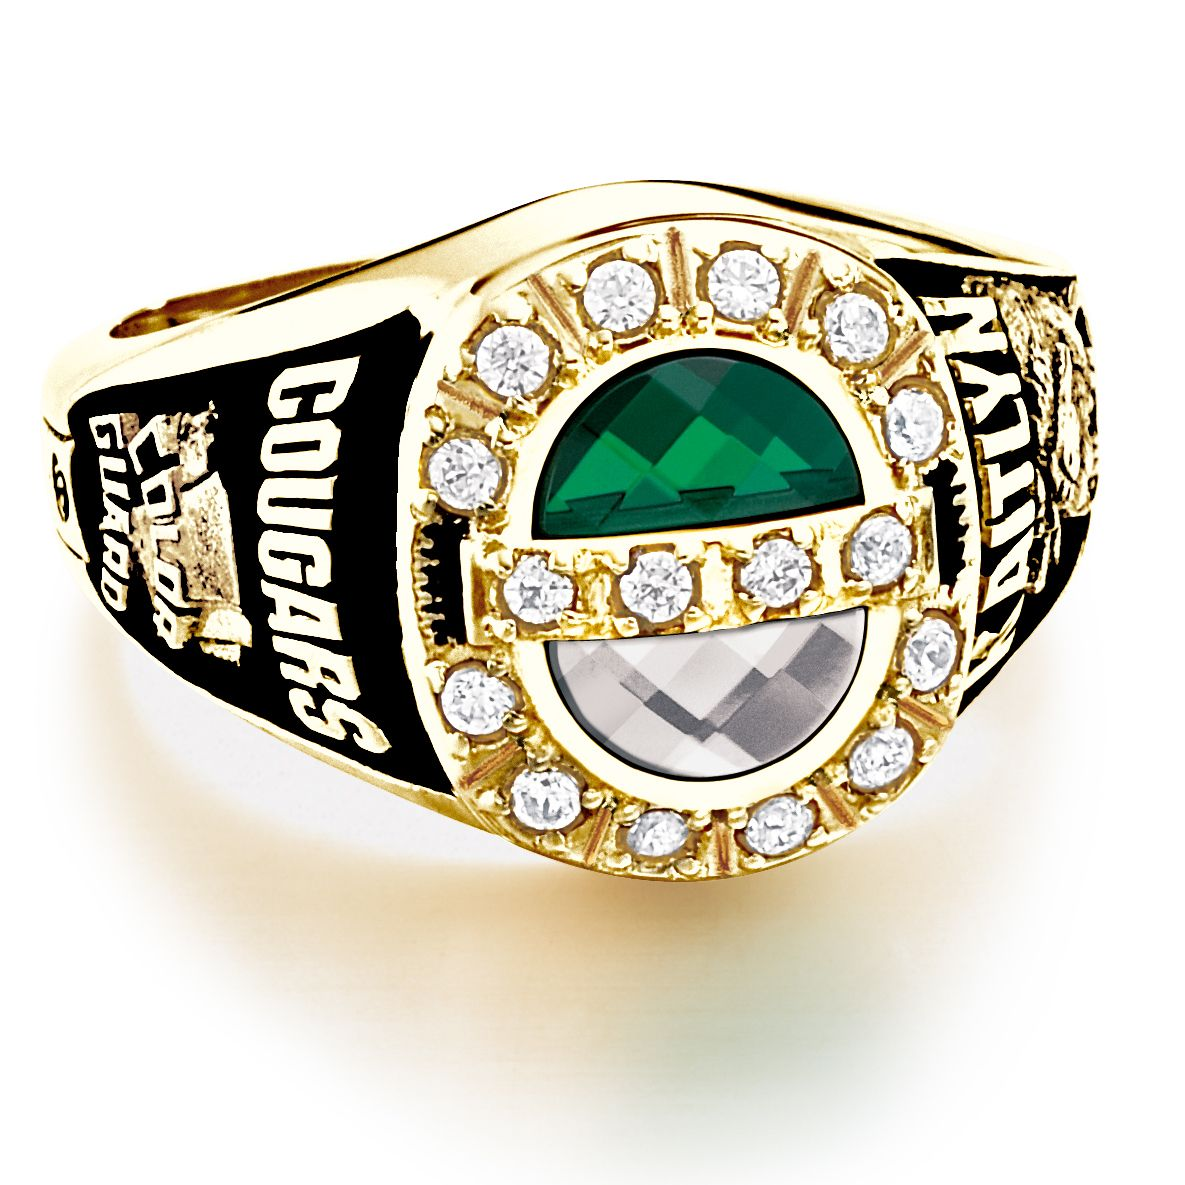 5cac52d1897c3 Custom personalized class ring from #Jostens Achiever Collection ...